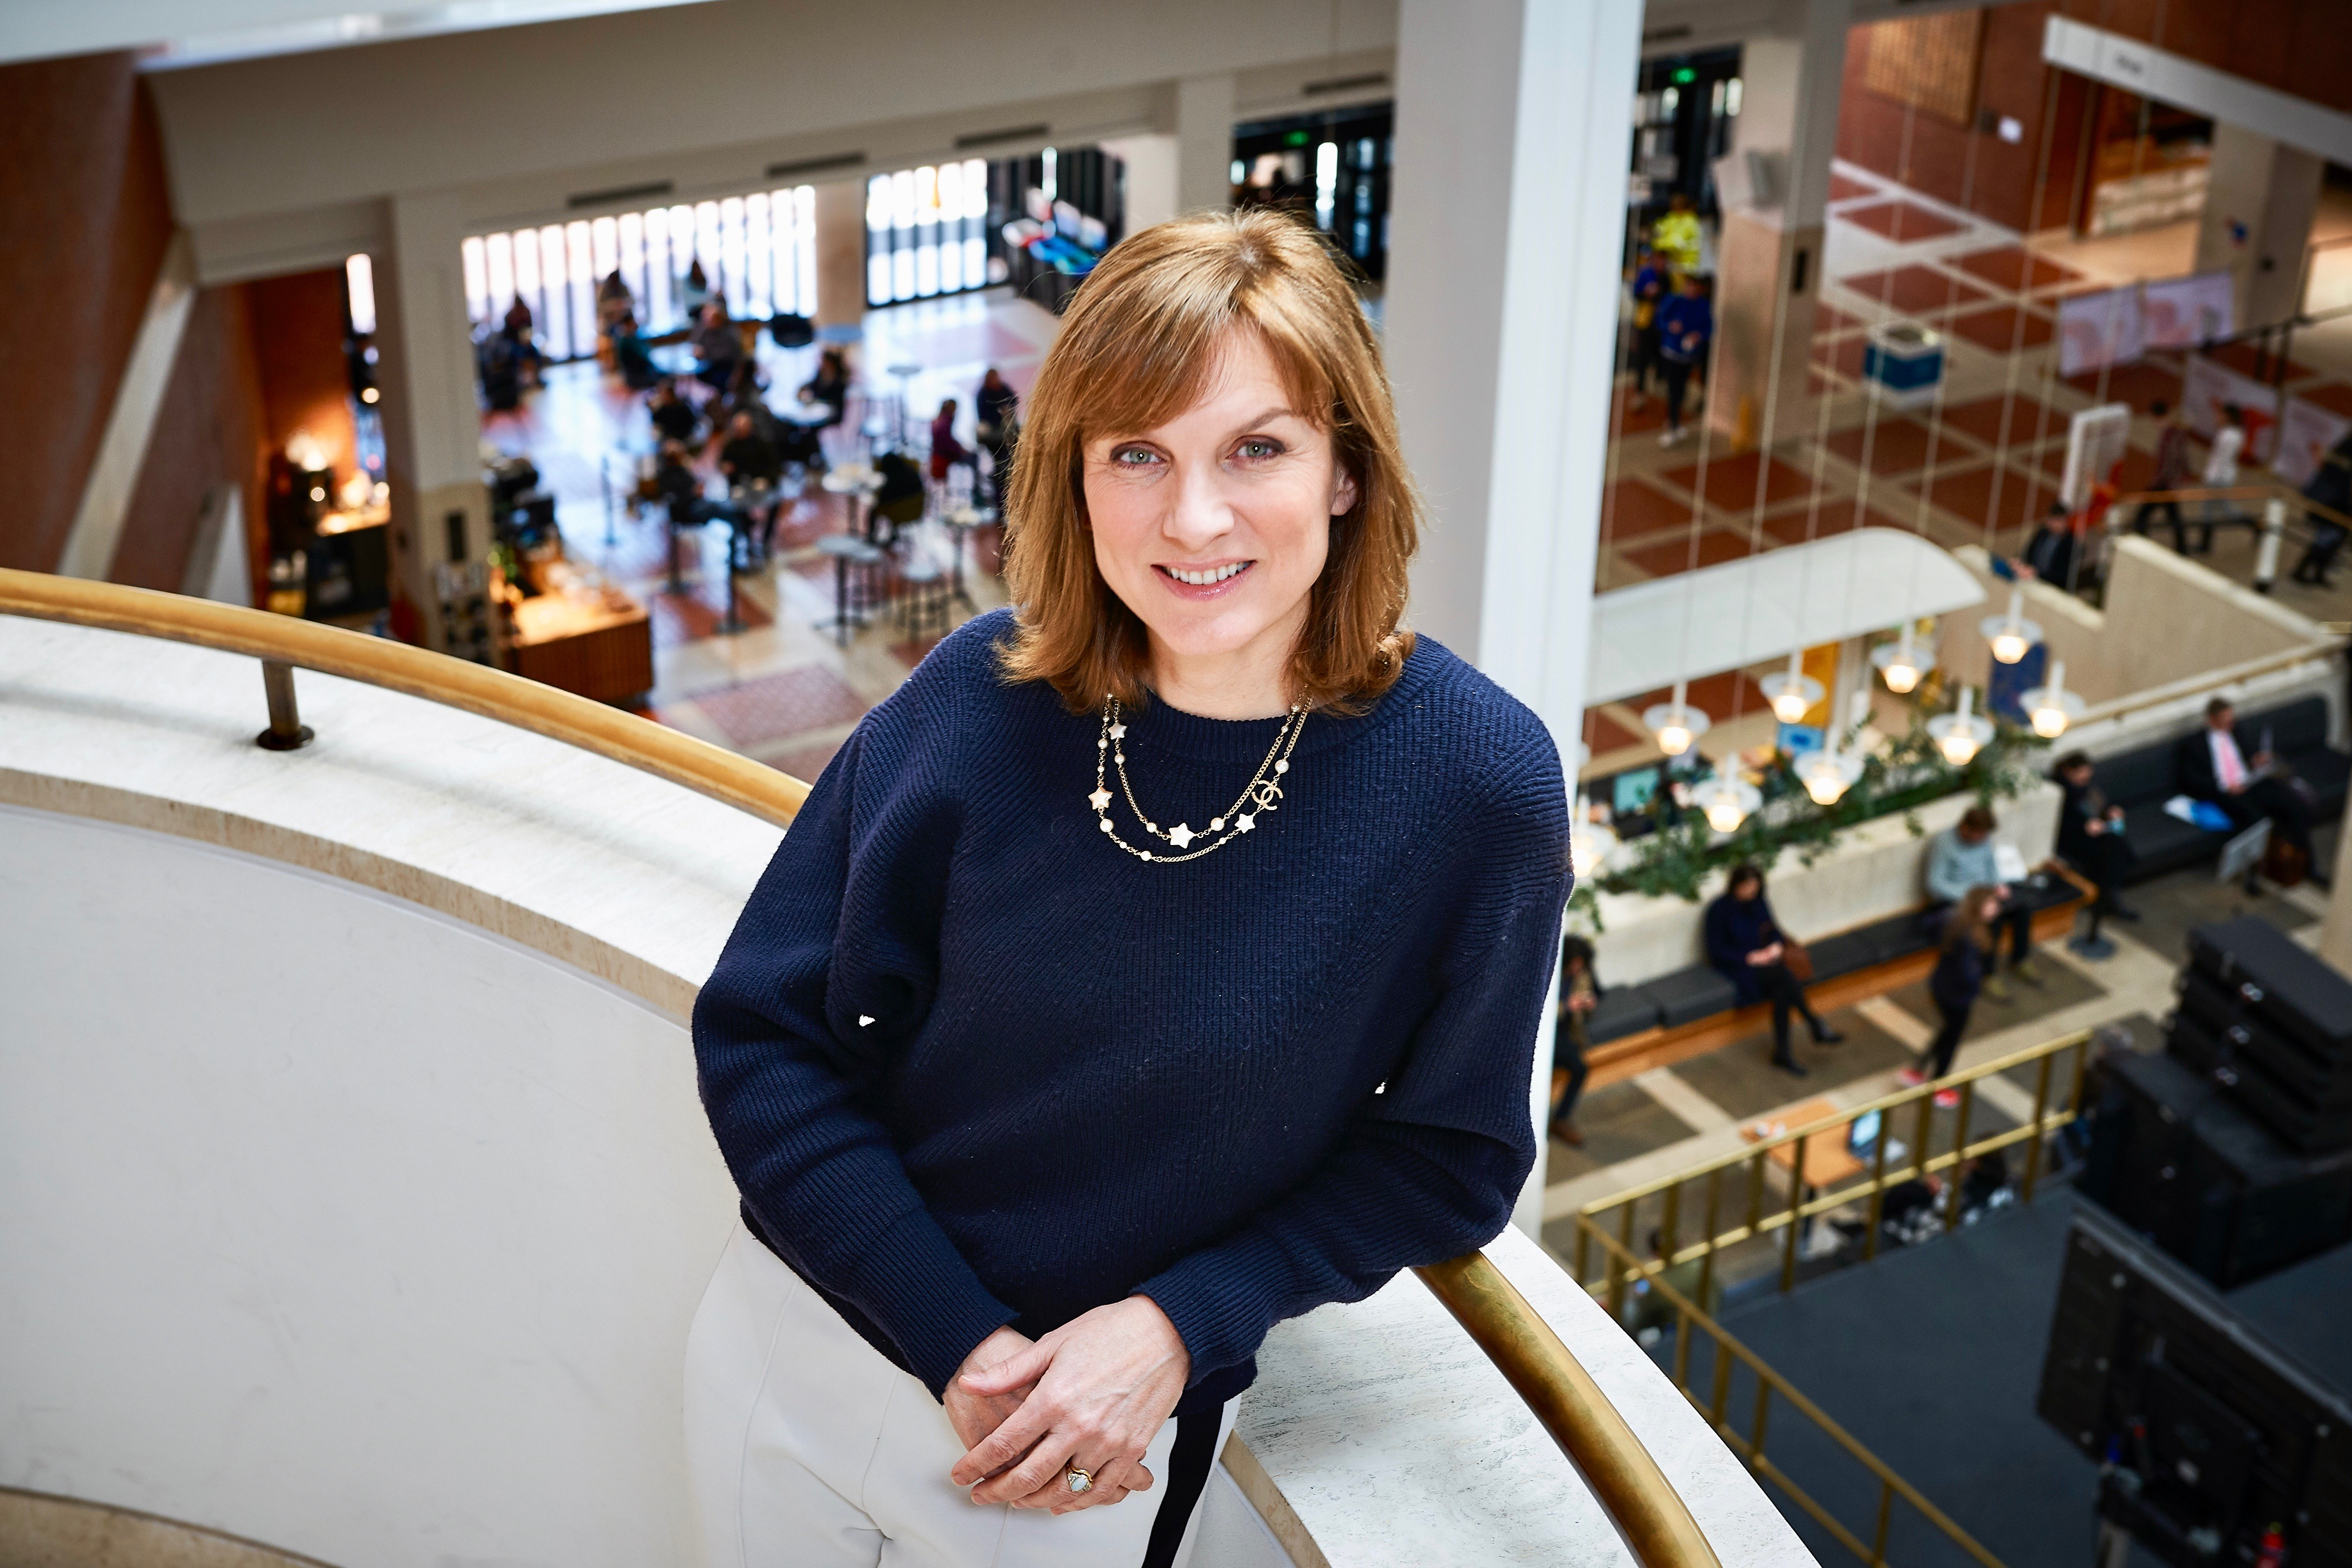 Fiona Bruce at the British Library for Sky Arts series, Treasures of the British Library, (c) Nutshell